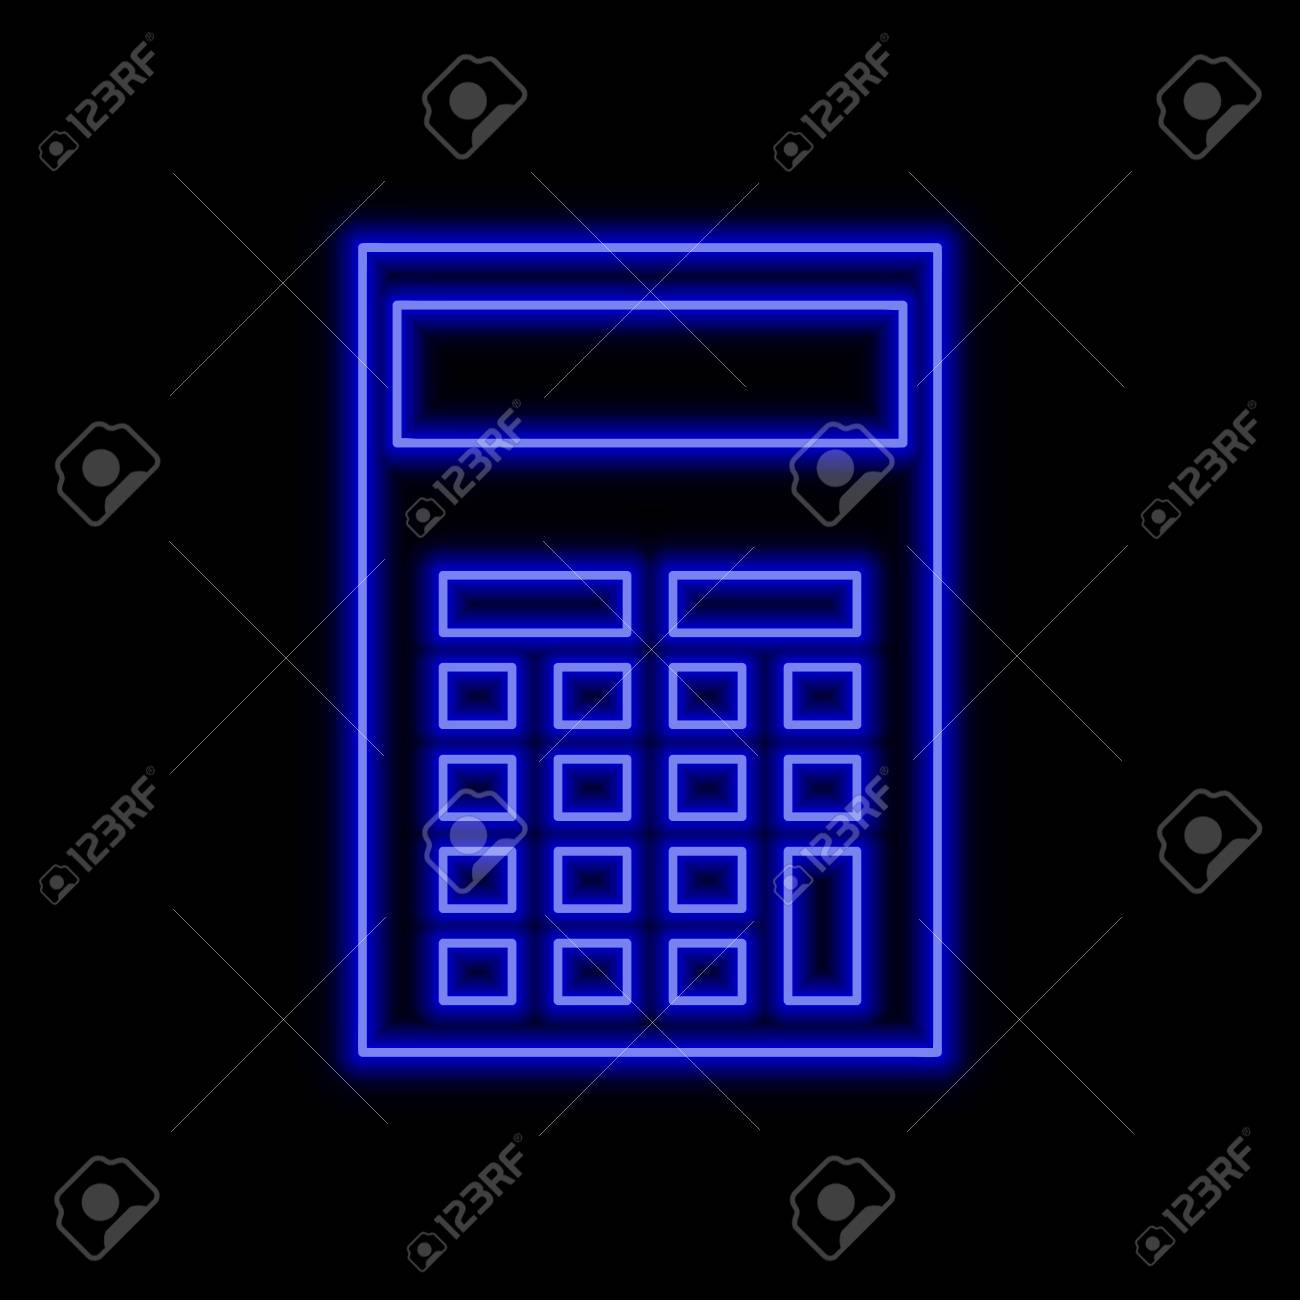 hight resolution of calculator neon sign bright glowing symbol on a black background neon style icon